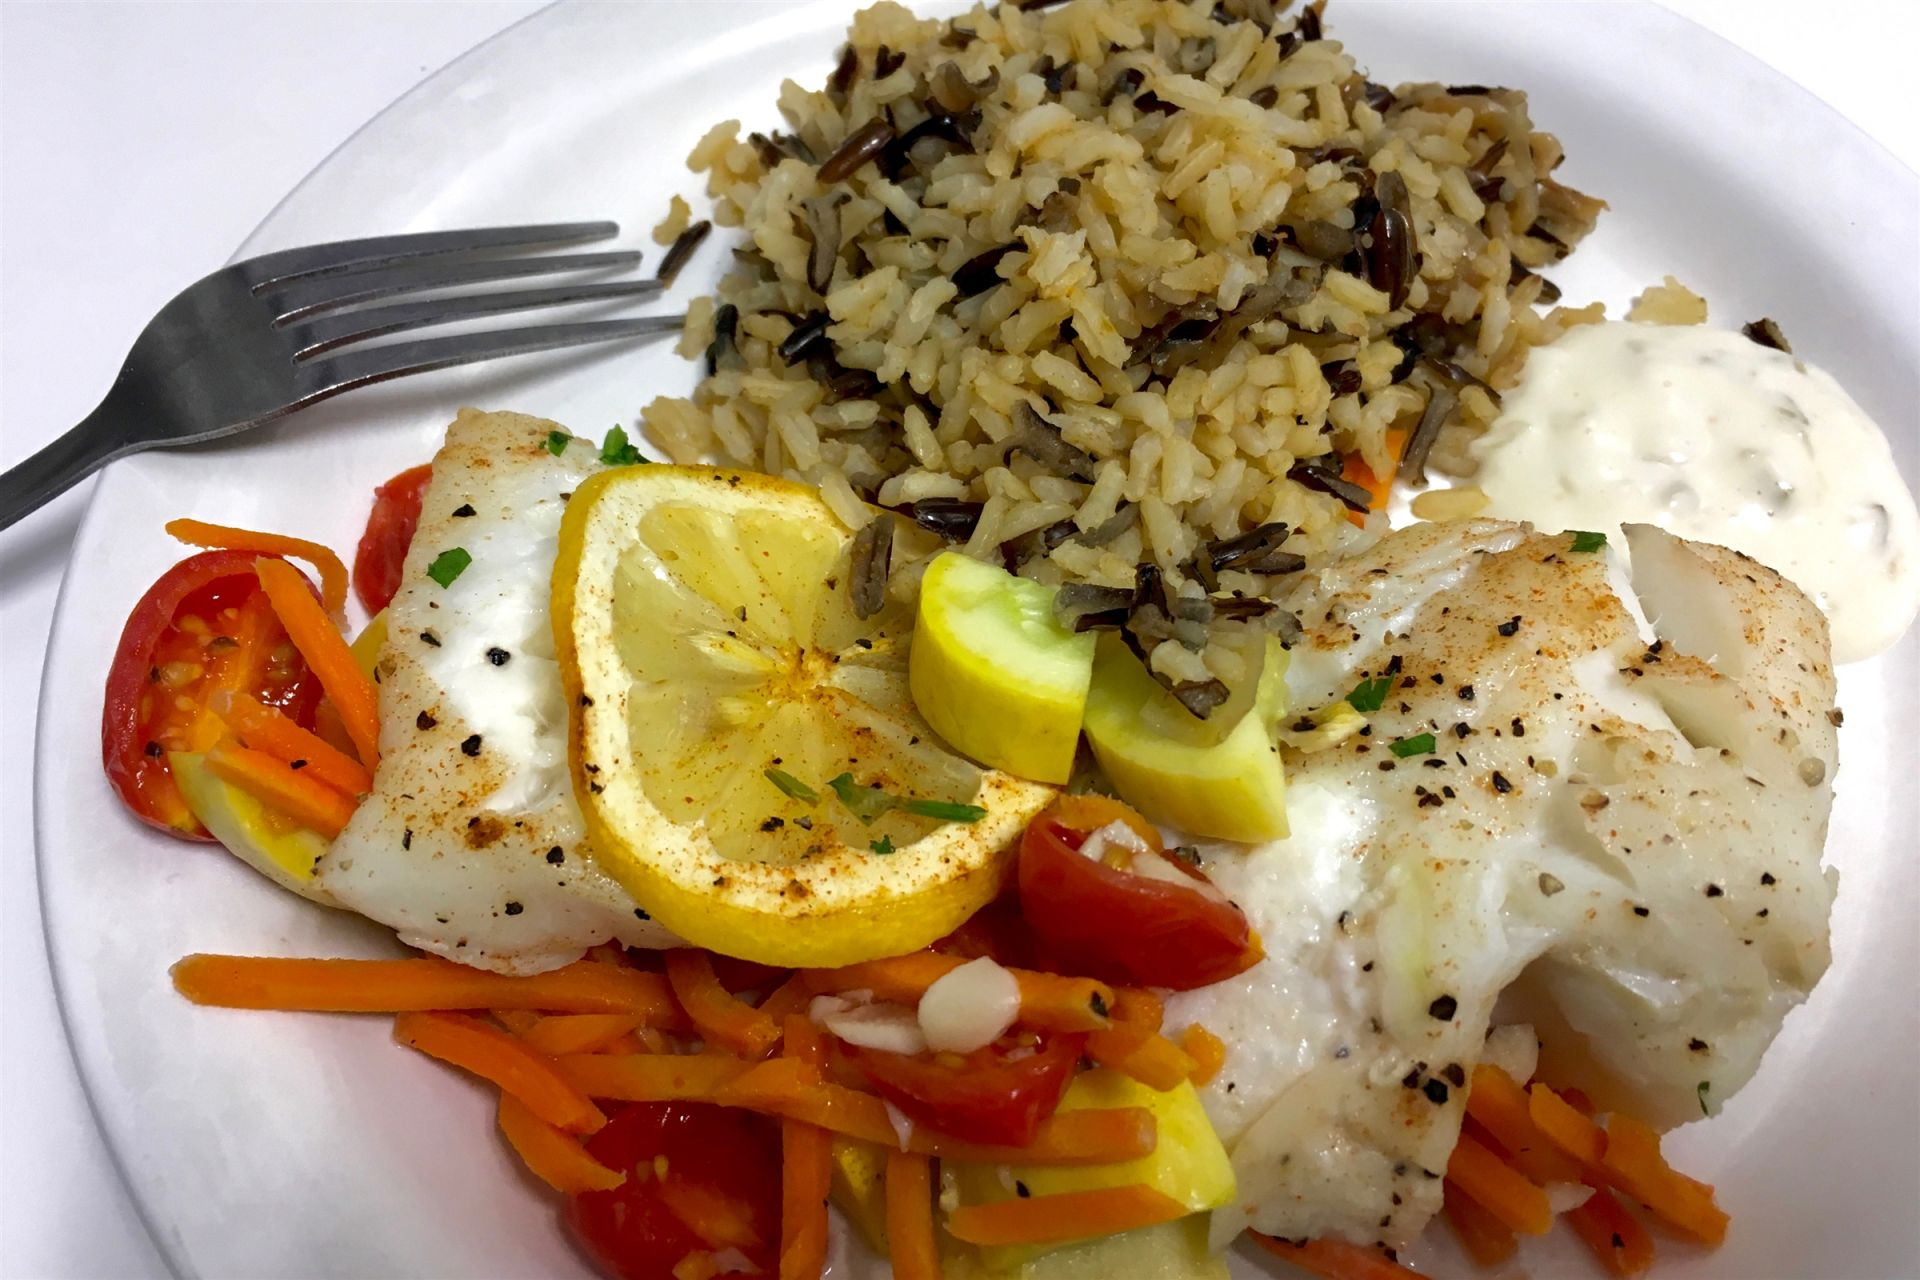 Roasted cod with vegetables and wild rice pilaf.